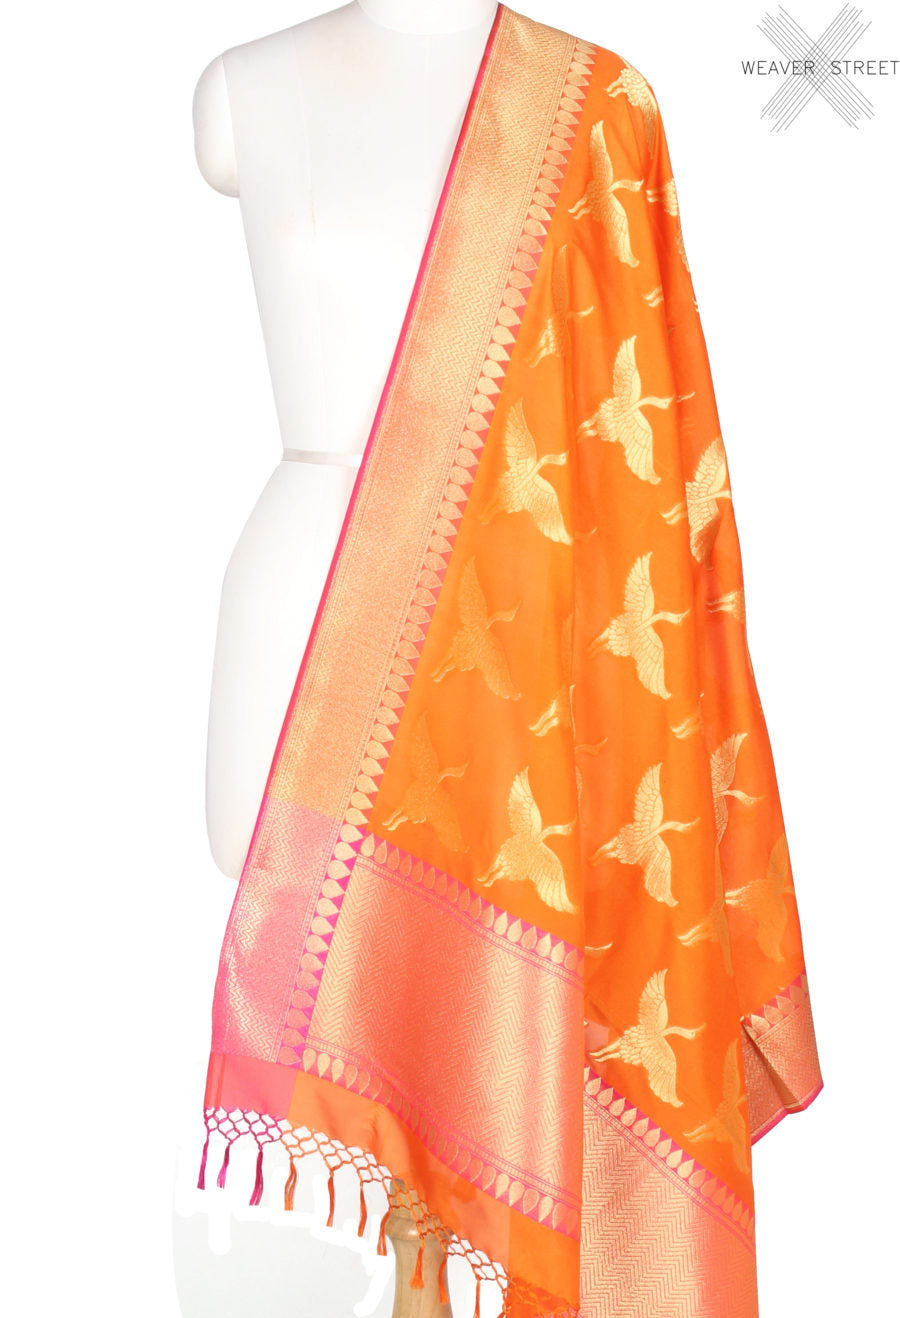 Orange Banarasi dupatta with flying stork motifs (1) Main